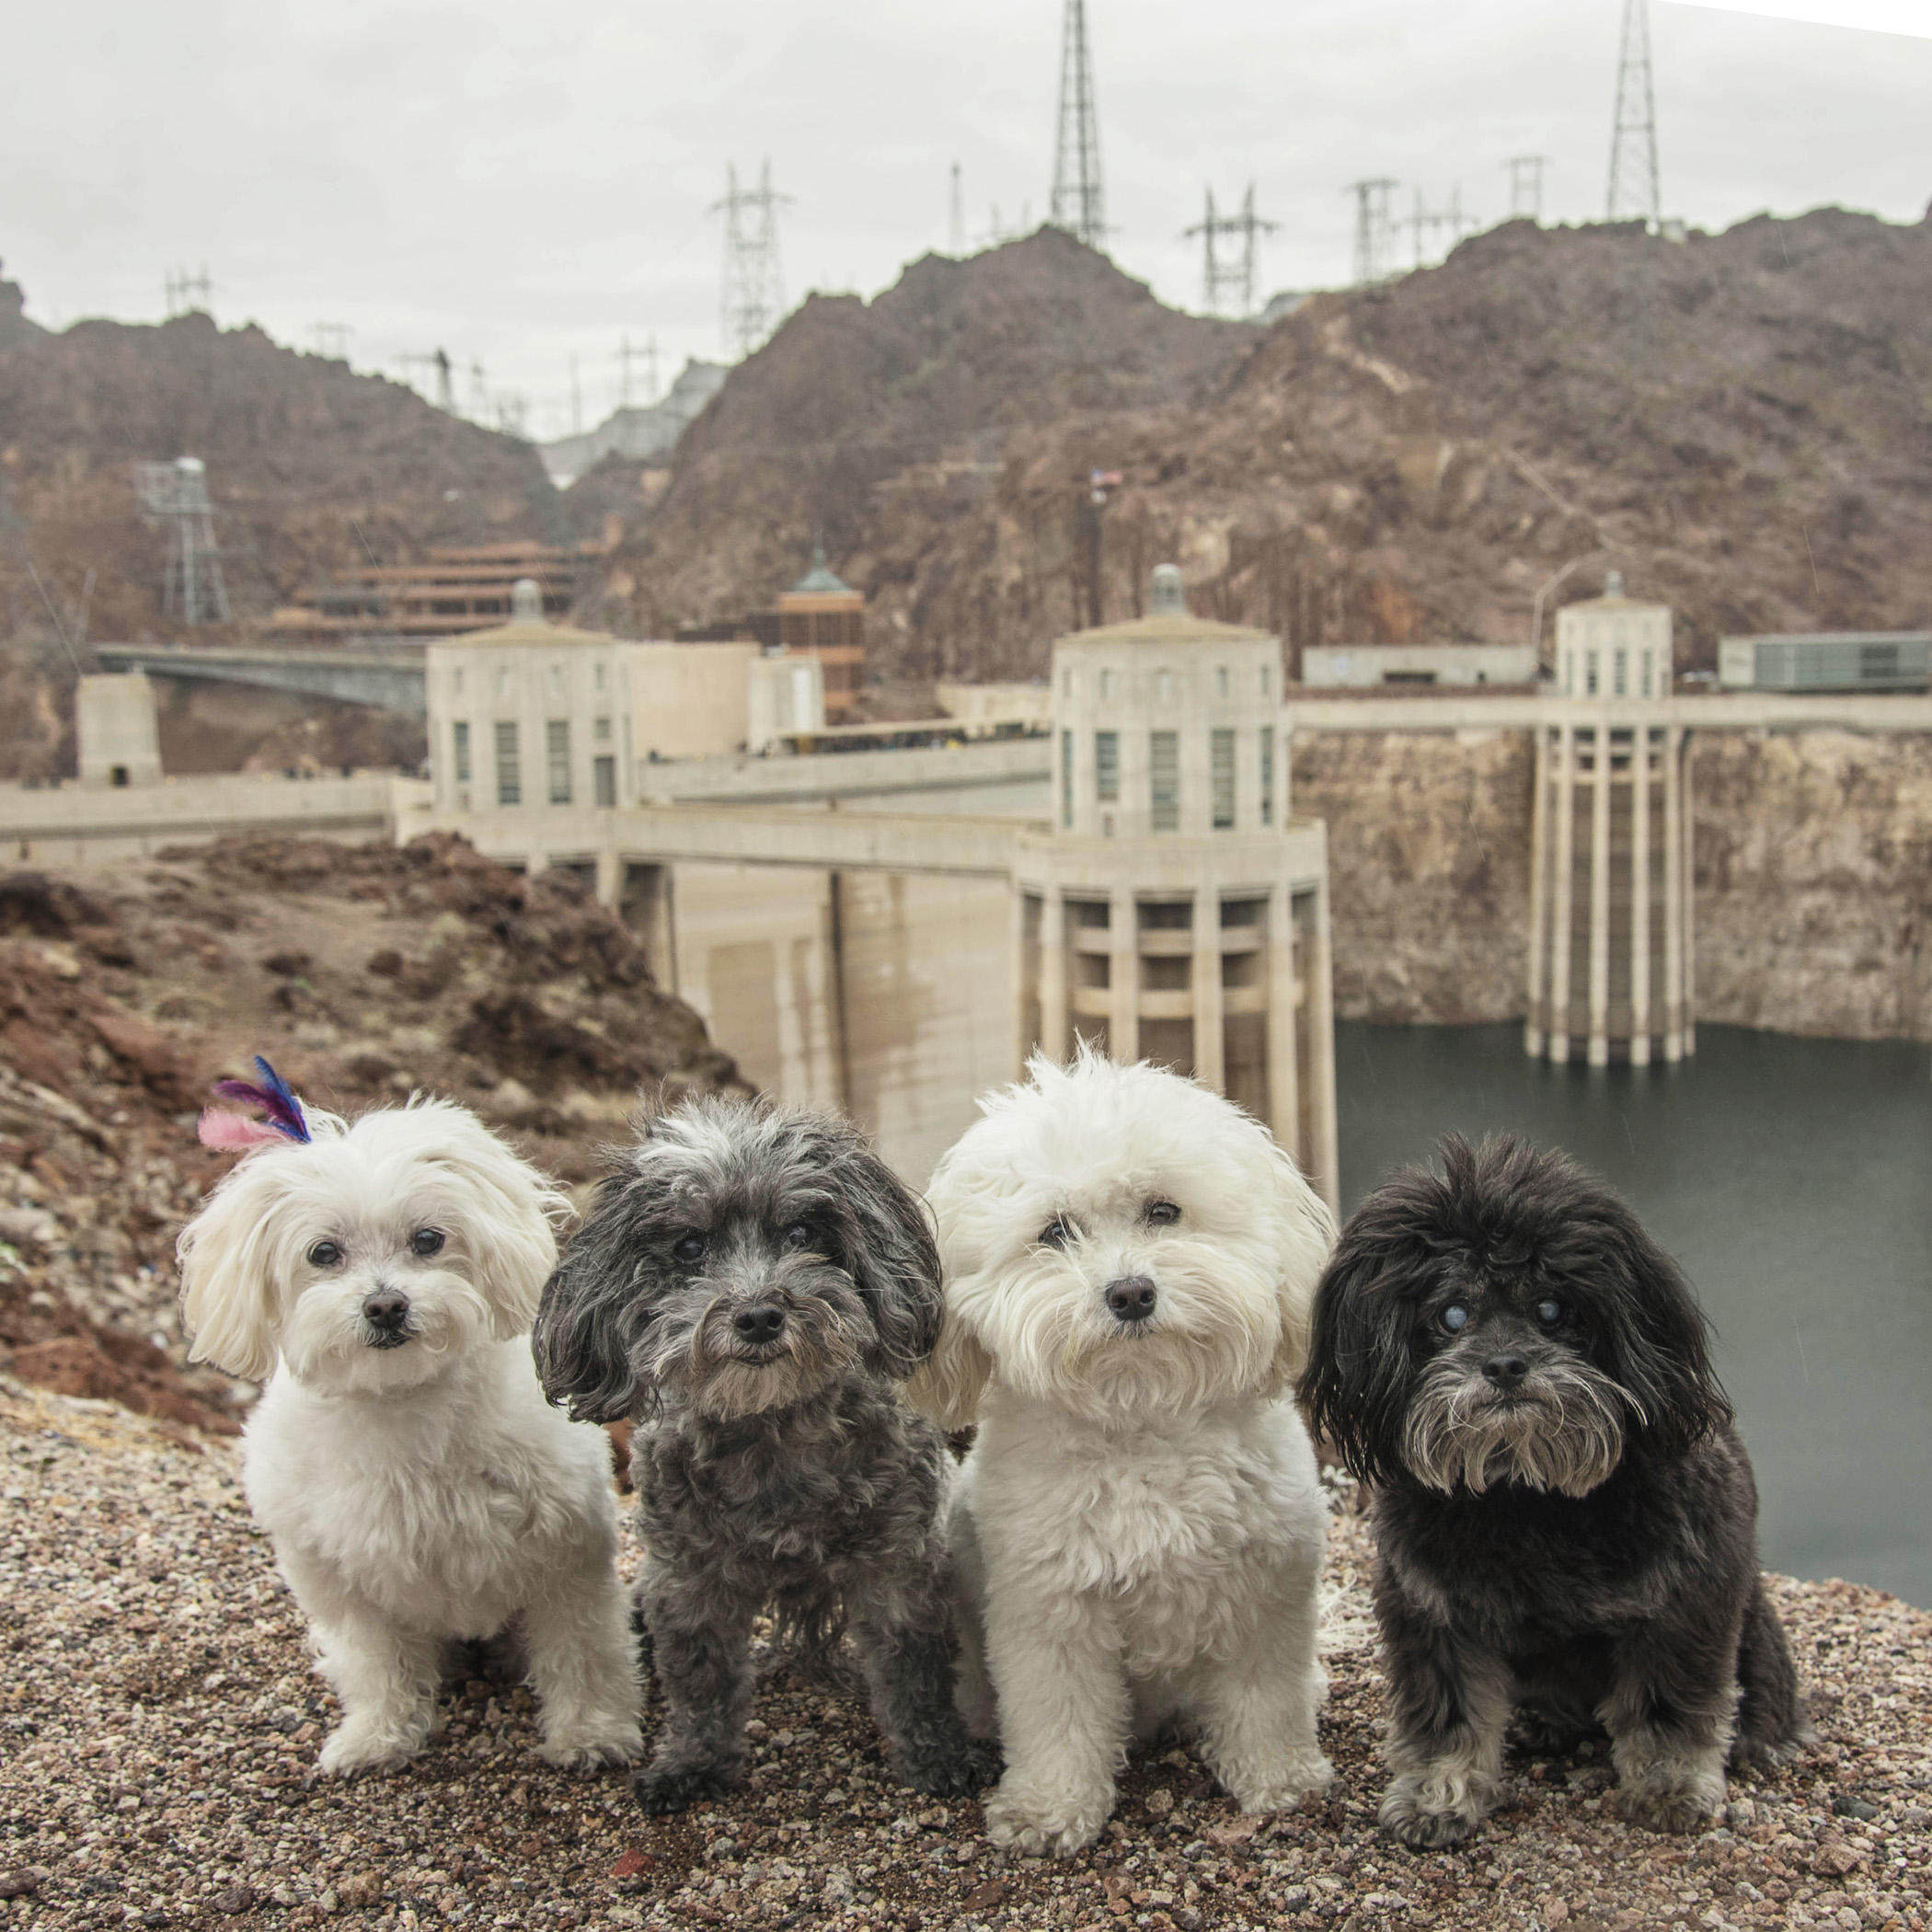 Our Daddy is a bit of a geek, so he drug us all the way to this Hoover Dam thing. We don't get it, but we do love our Daddy, so if it makes him happy, then we're in!